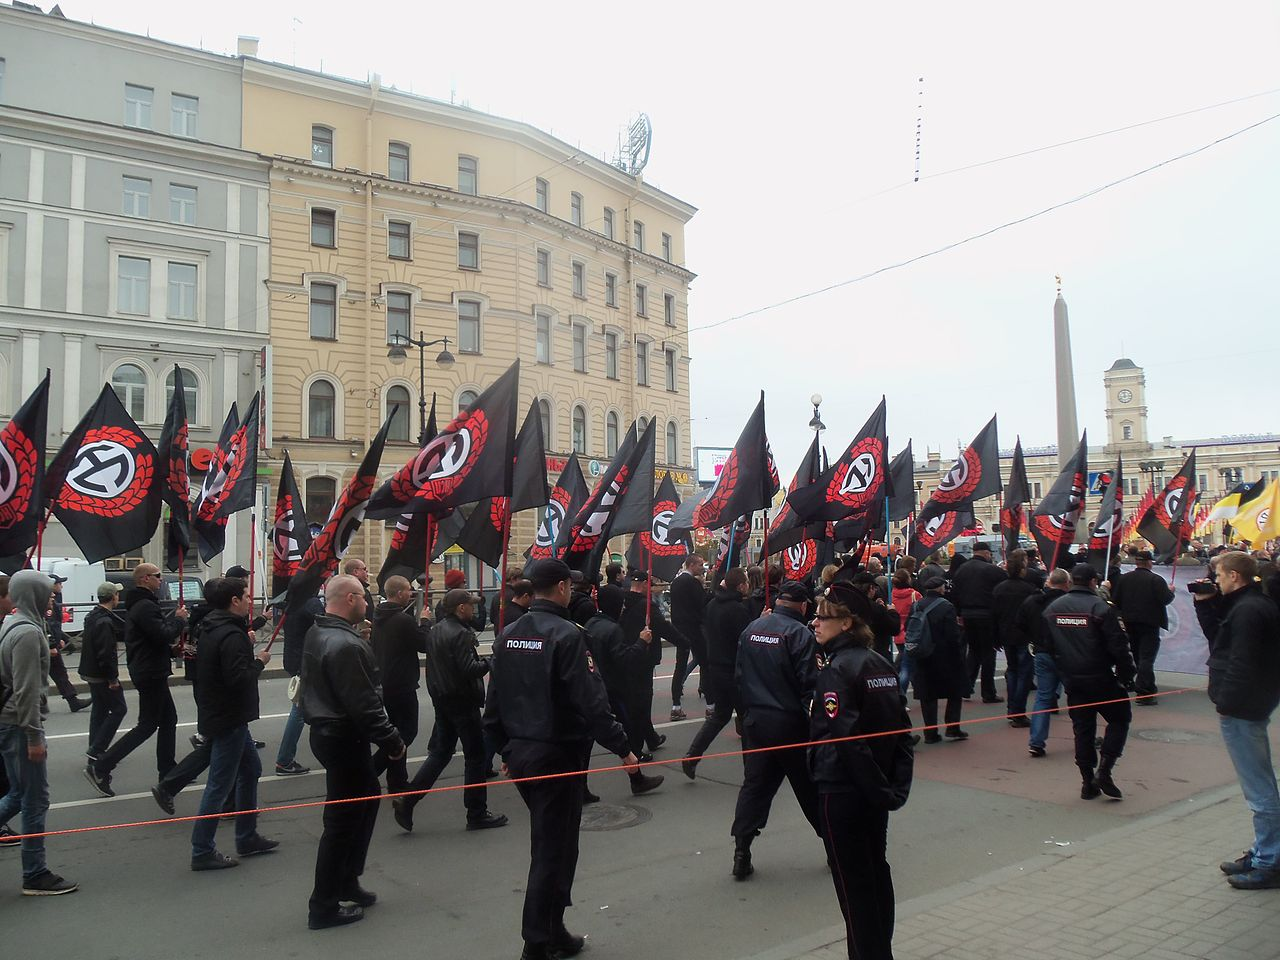 National Socialists Marching near Vosstaniya Square in St. Petersburg on 1 May 2014 Ain92